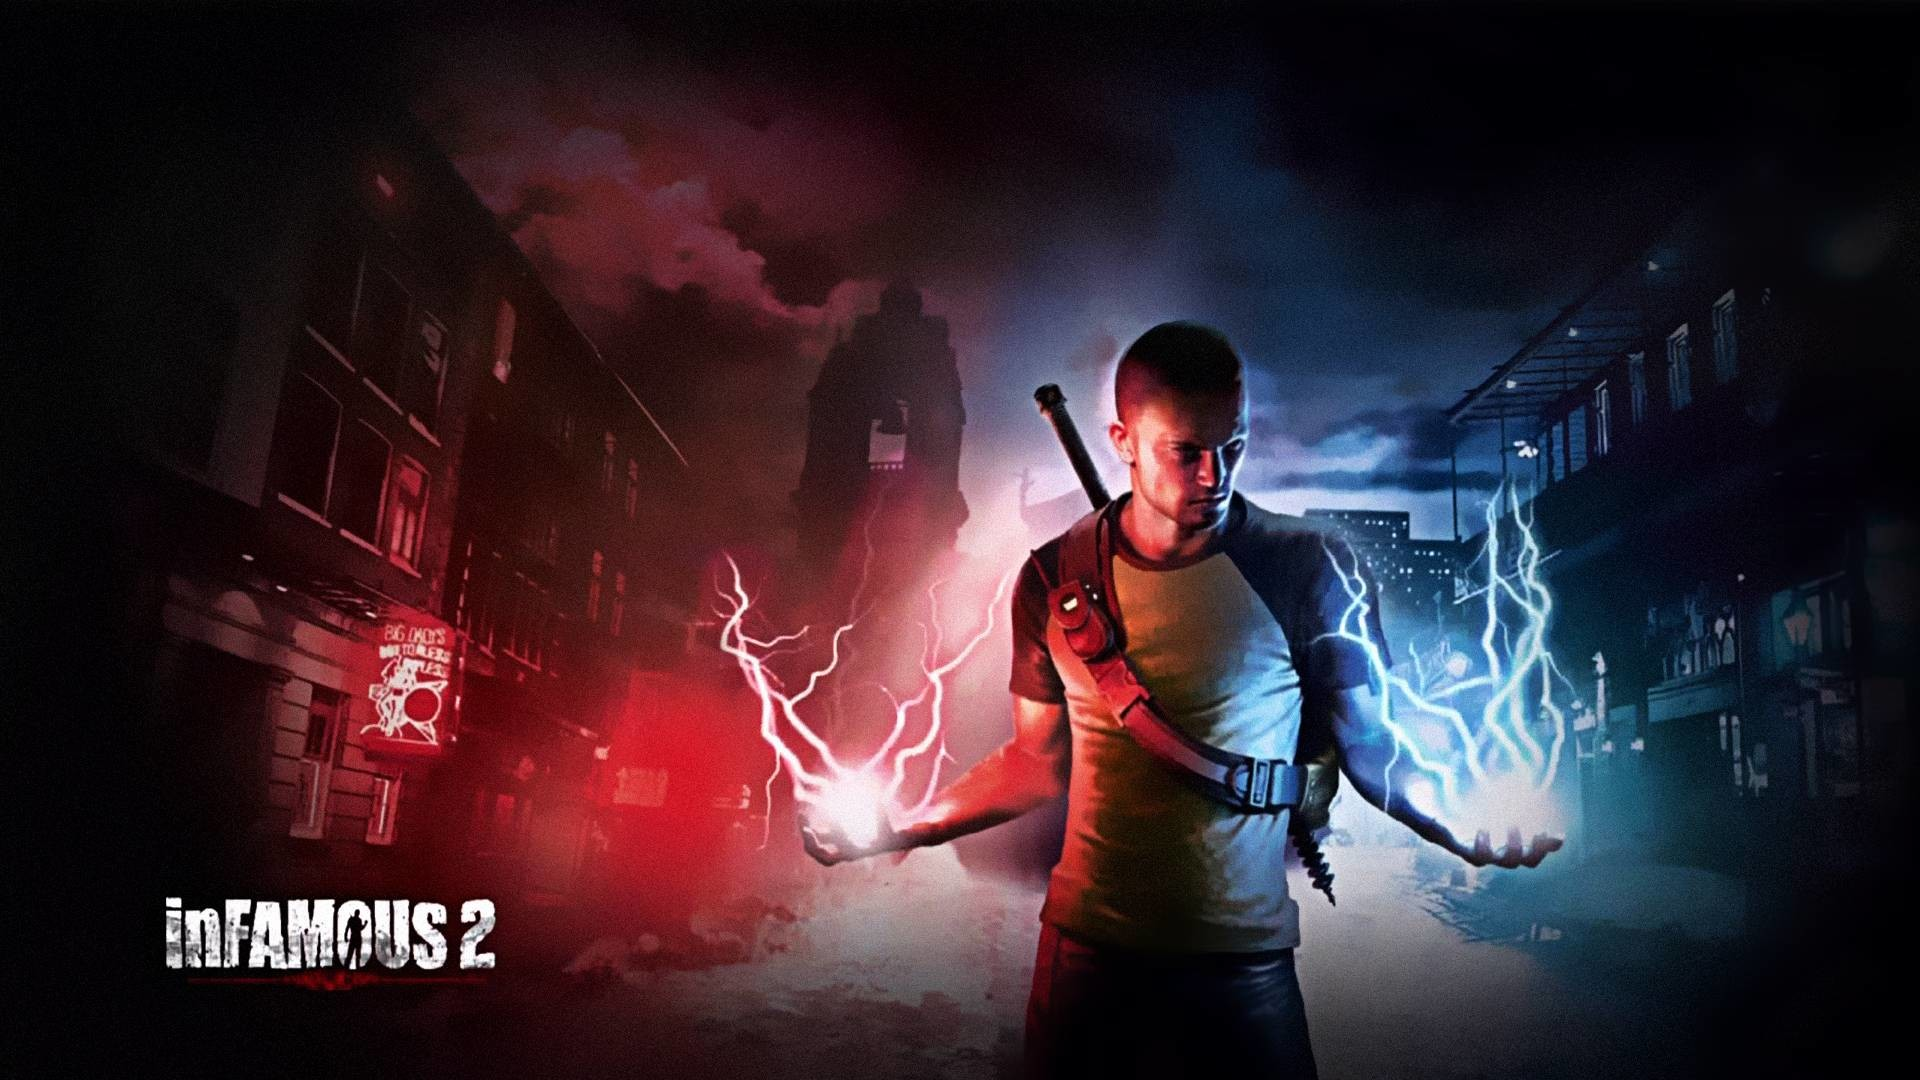 1920x1080 Wallpapers For > Infamous 2 Wallpaper Hd